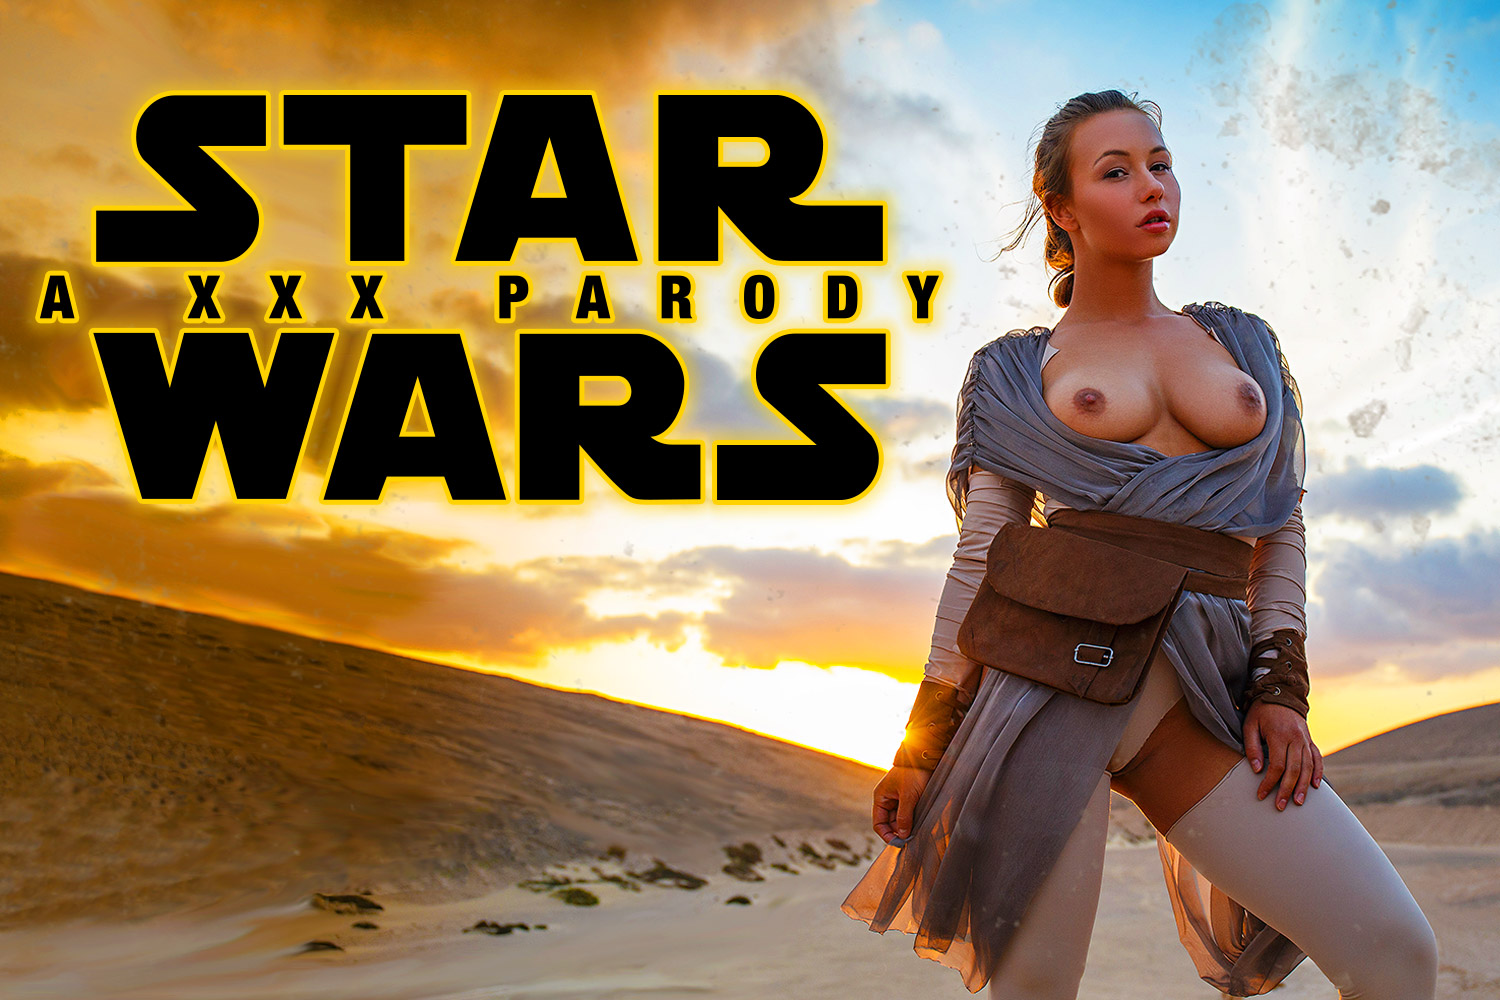 Star Wars Vr Porn Cosplay Starring Taylor Sands As Rey -9299